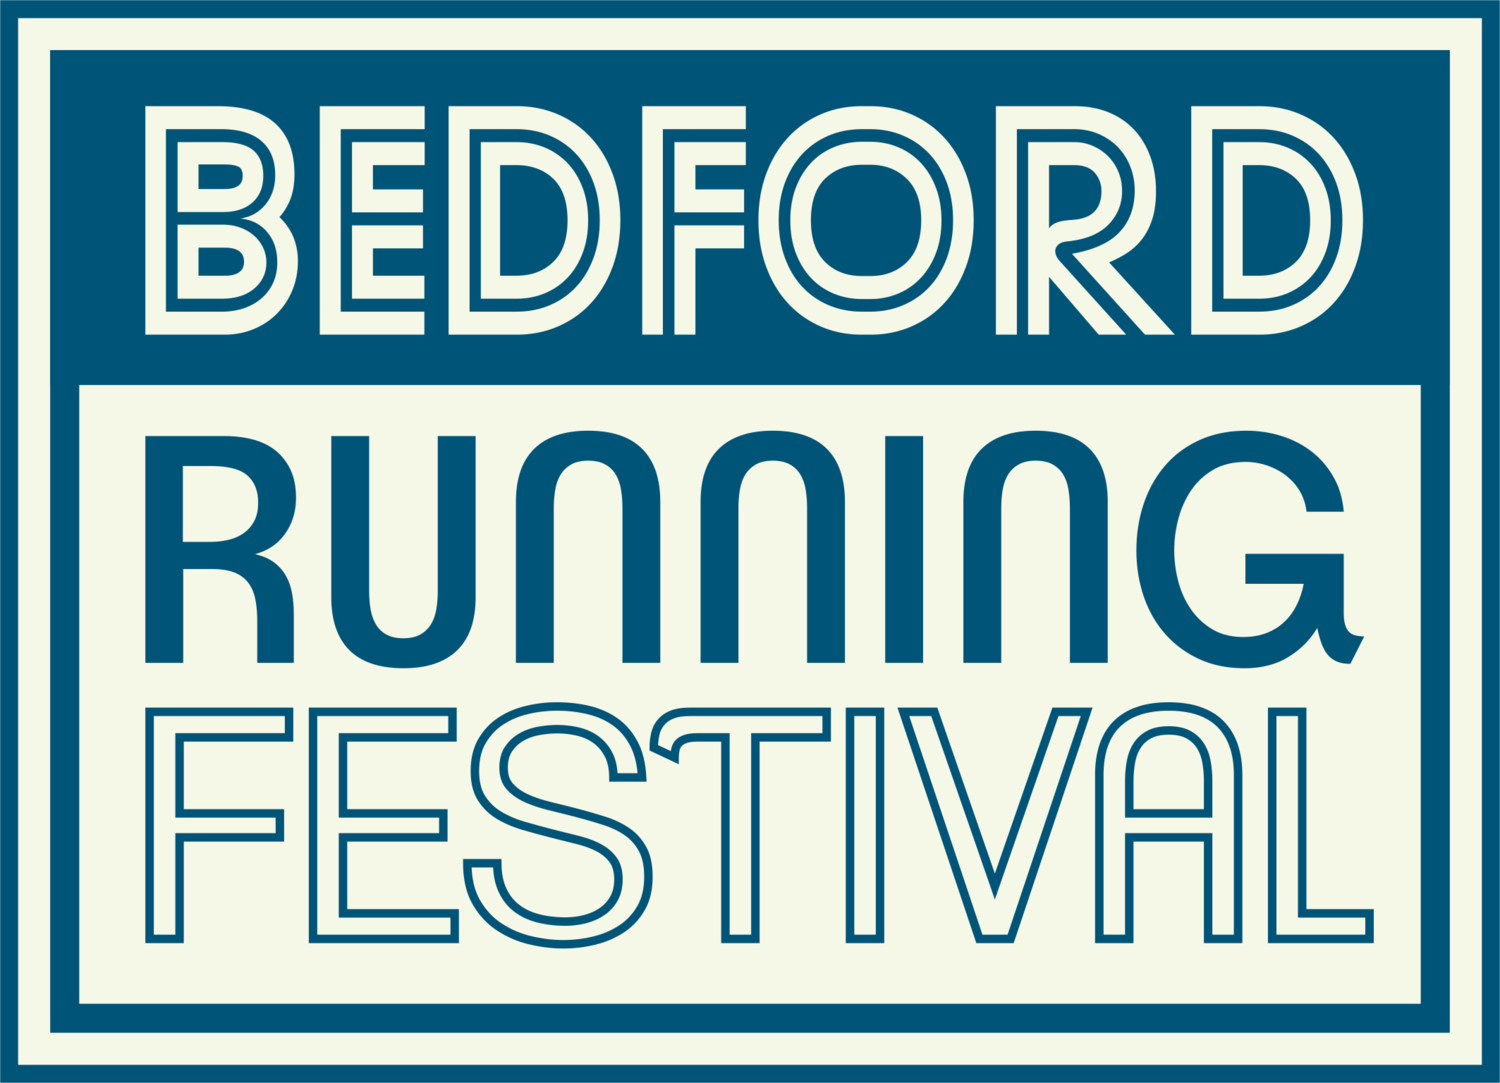 Bedford Running Festival | 30 August - 1 September